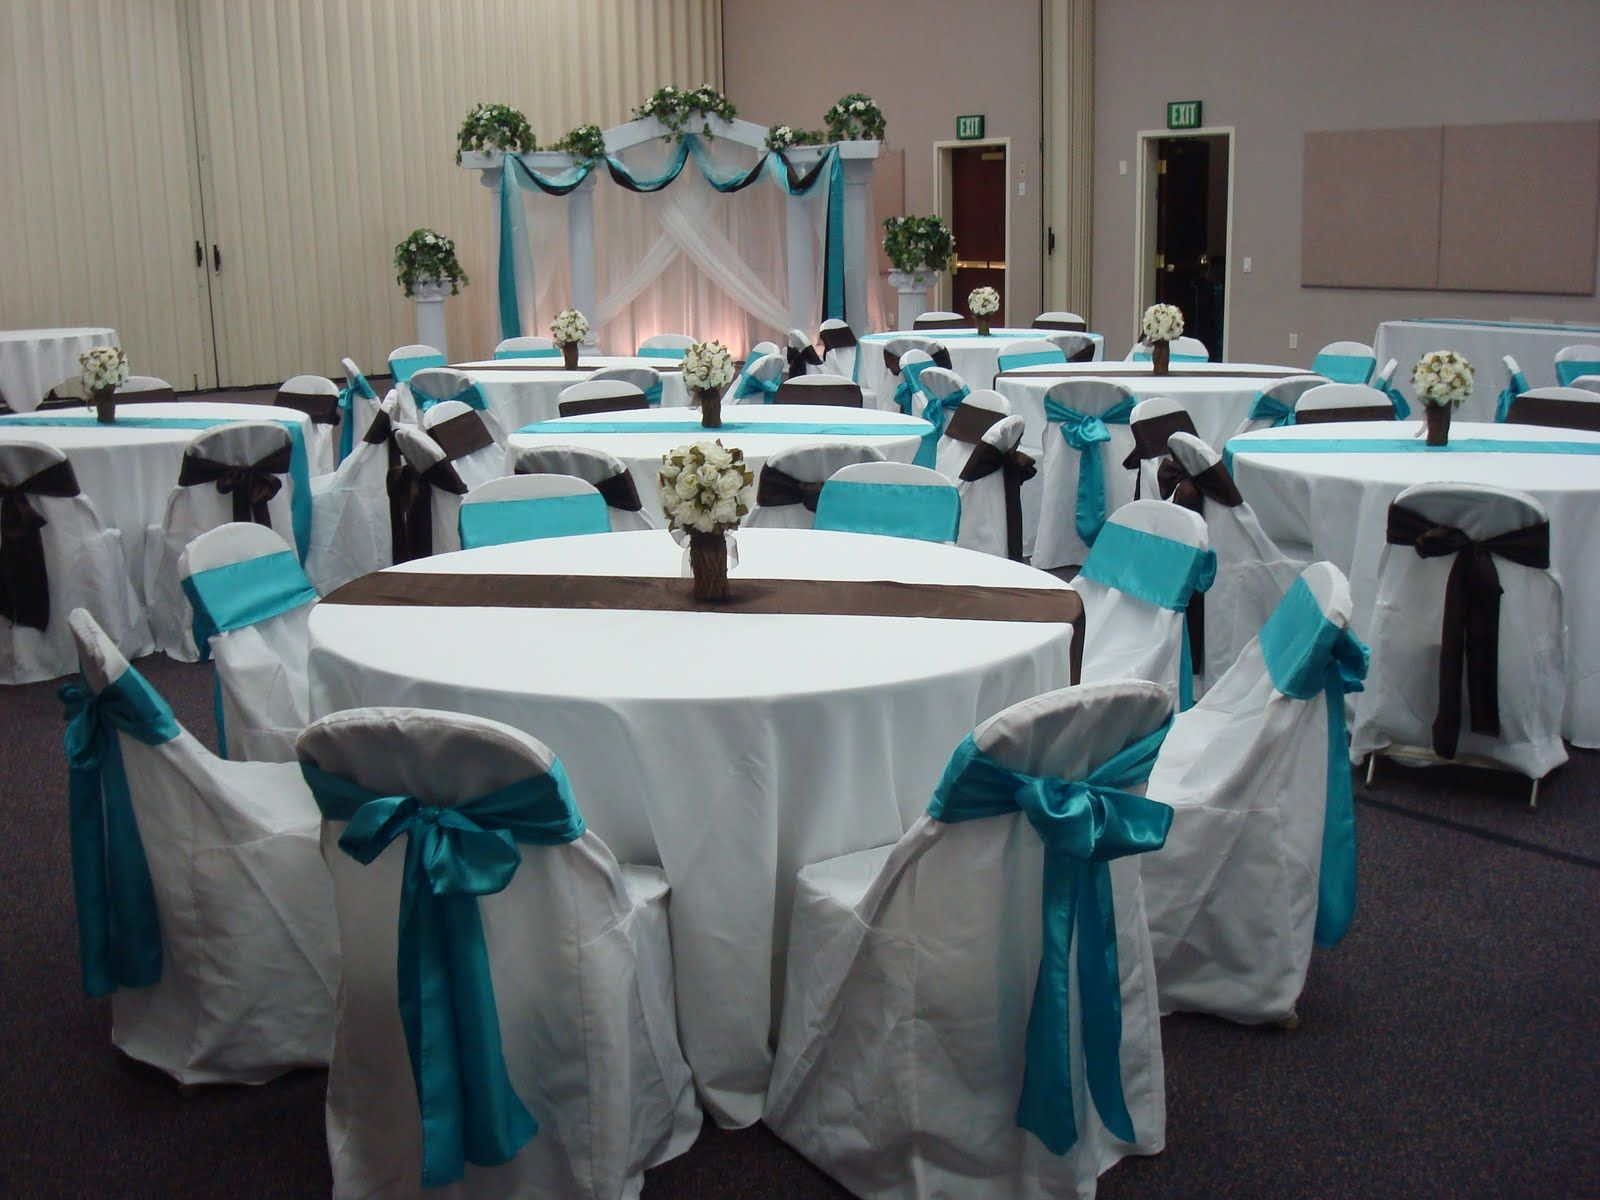 decoration for weddding reception in gym | ... .com/decorating ...